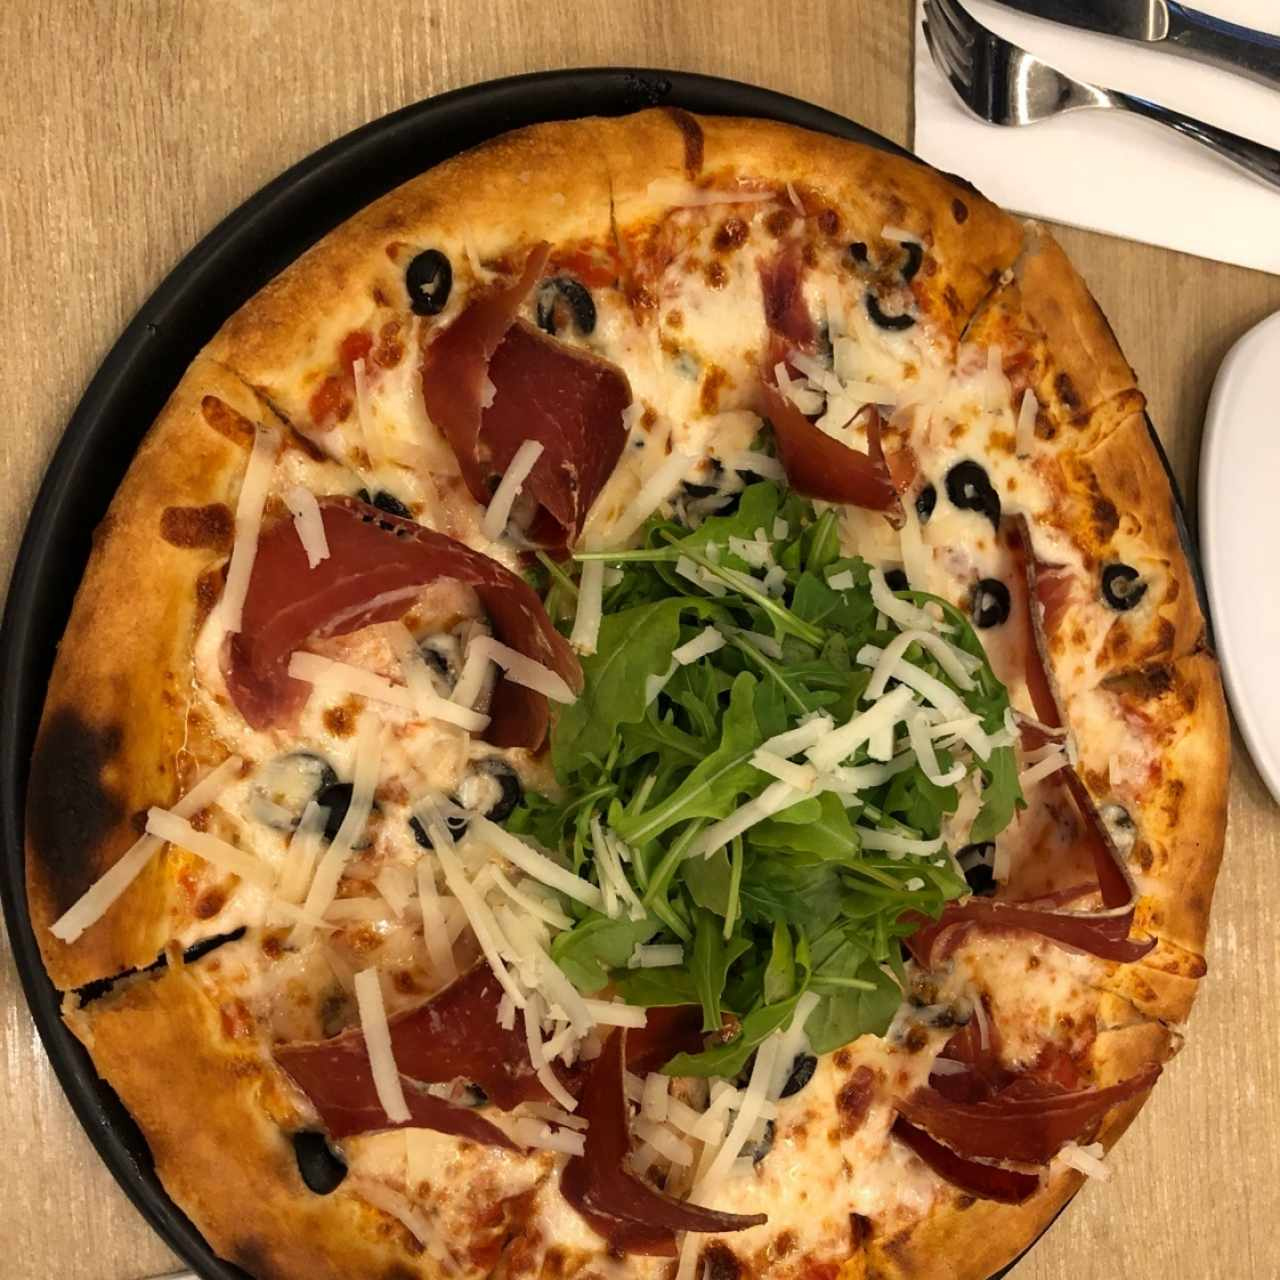 Pizza de jamon serrano